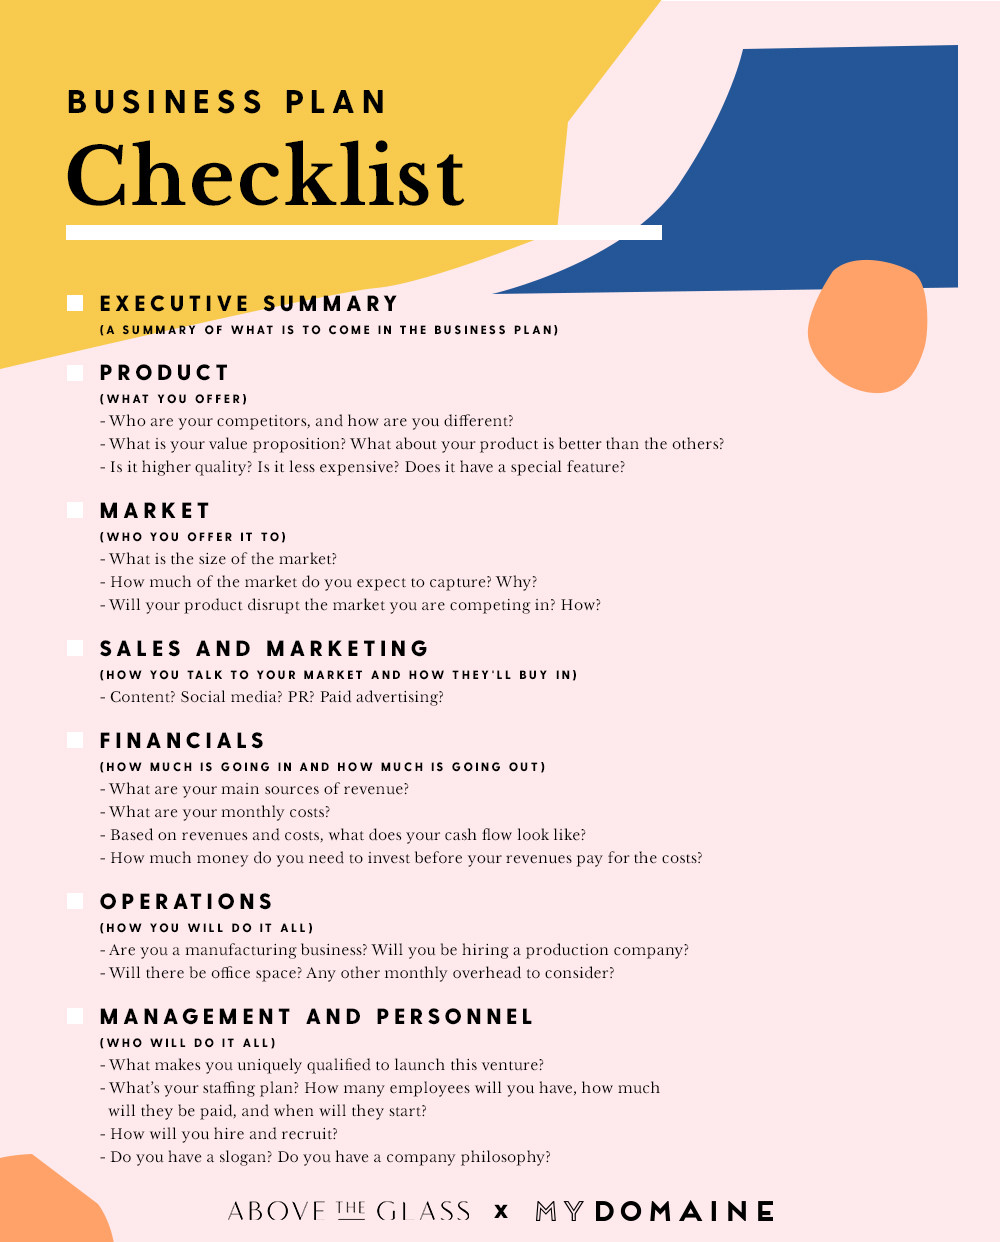 Business checklist examples pdf business plan checklist example wajeb